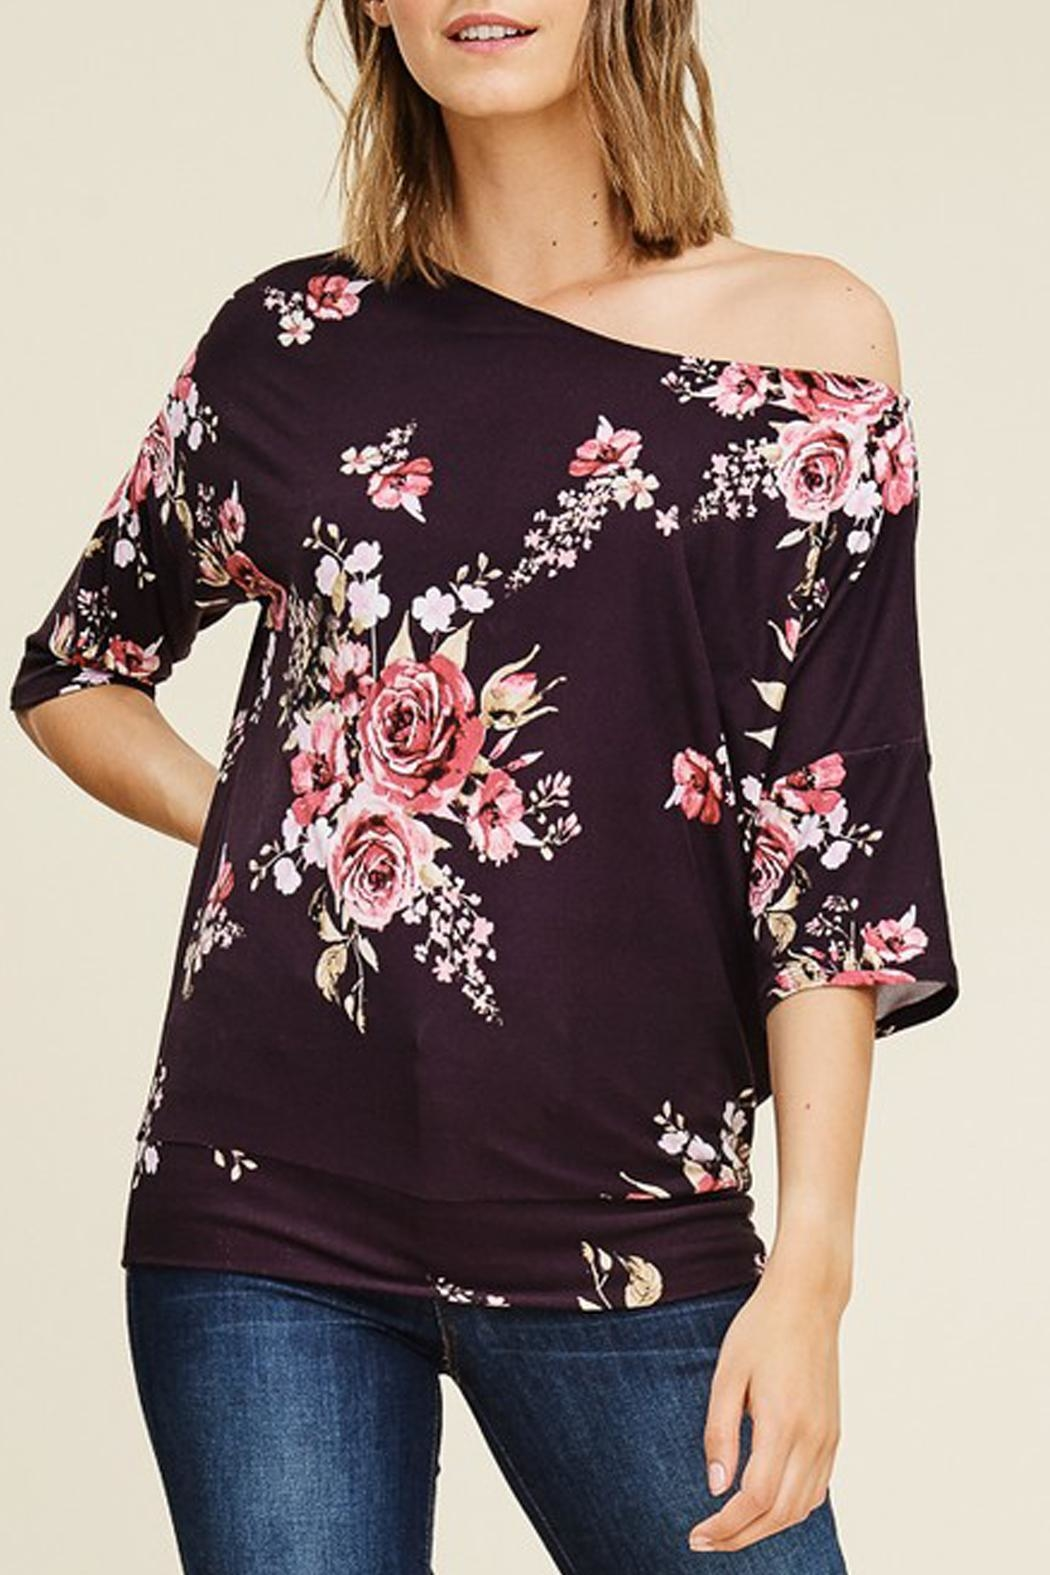 White Birch Off-The-Shoulder Floral Top - Main Image